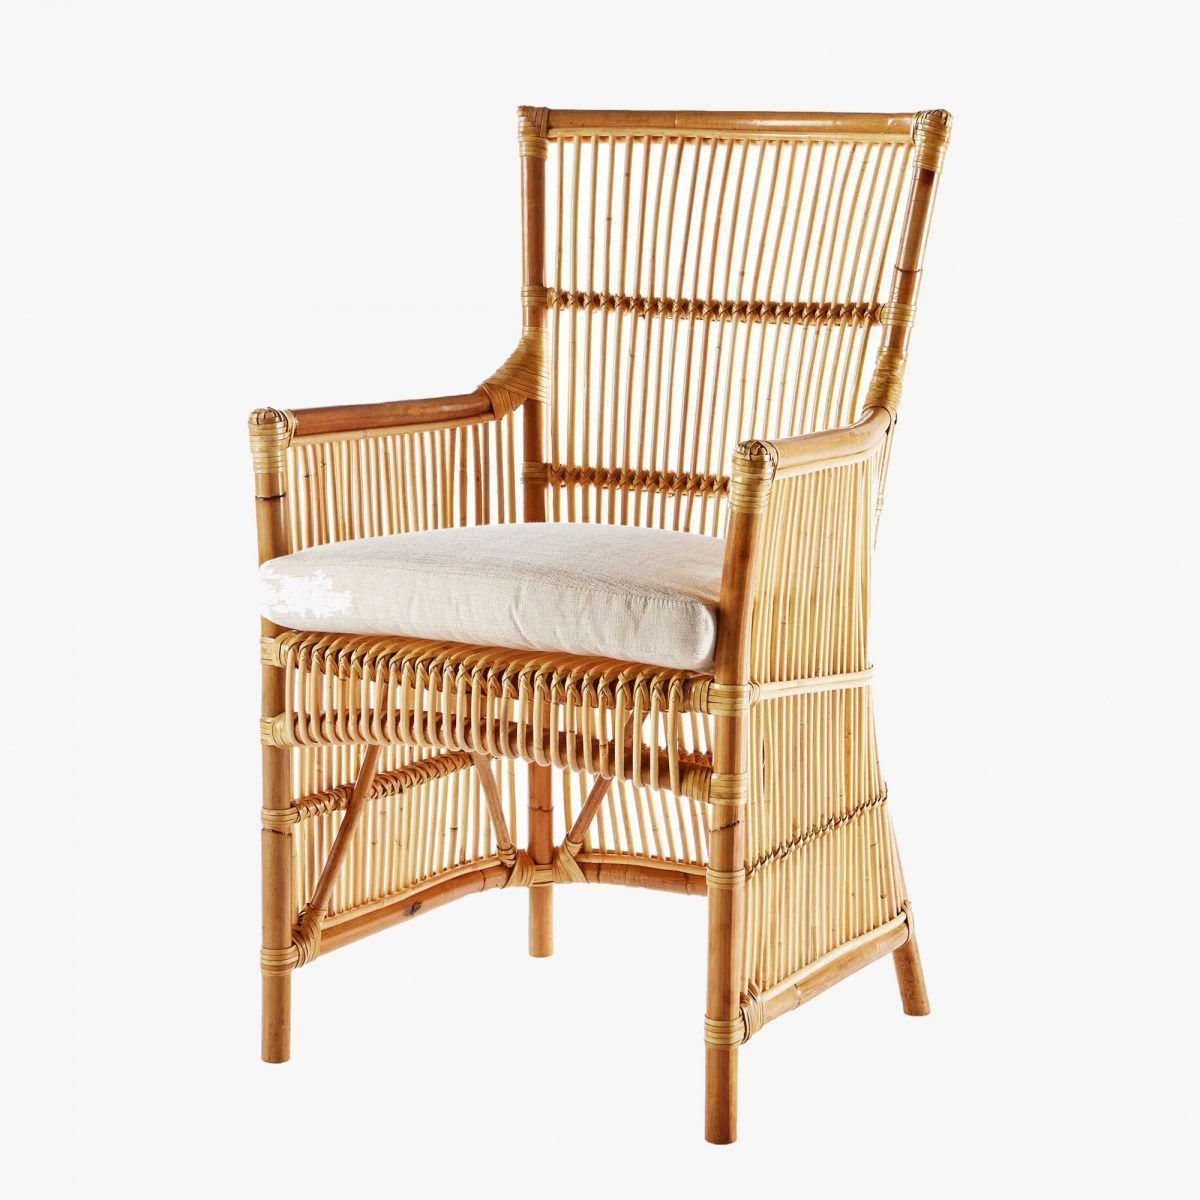 This striking Emile Rattan Chair is crafted from rattan